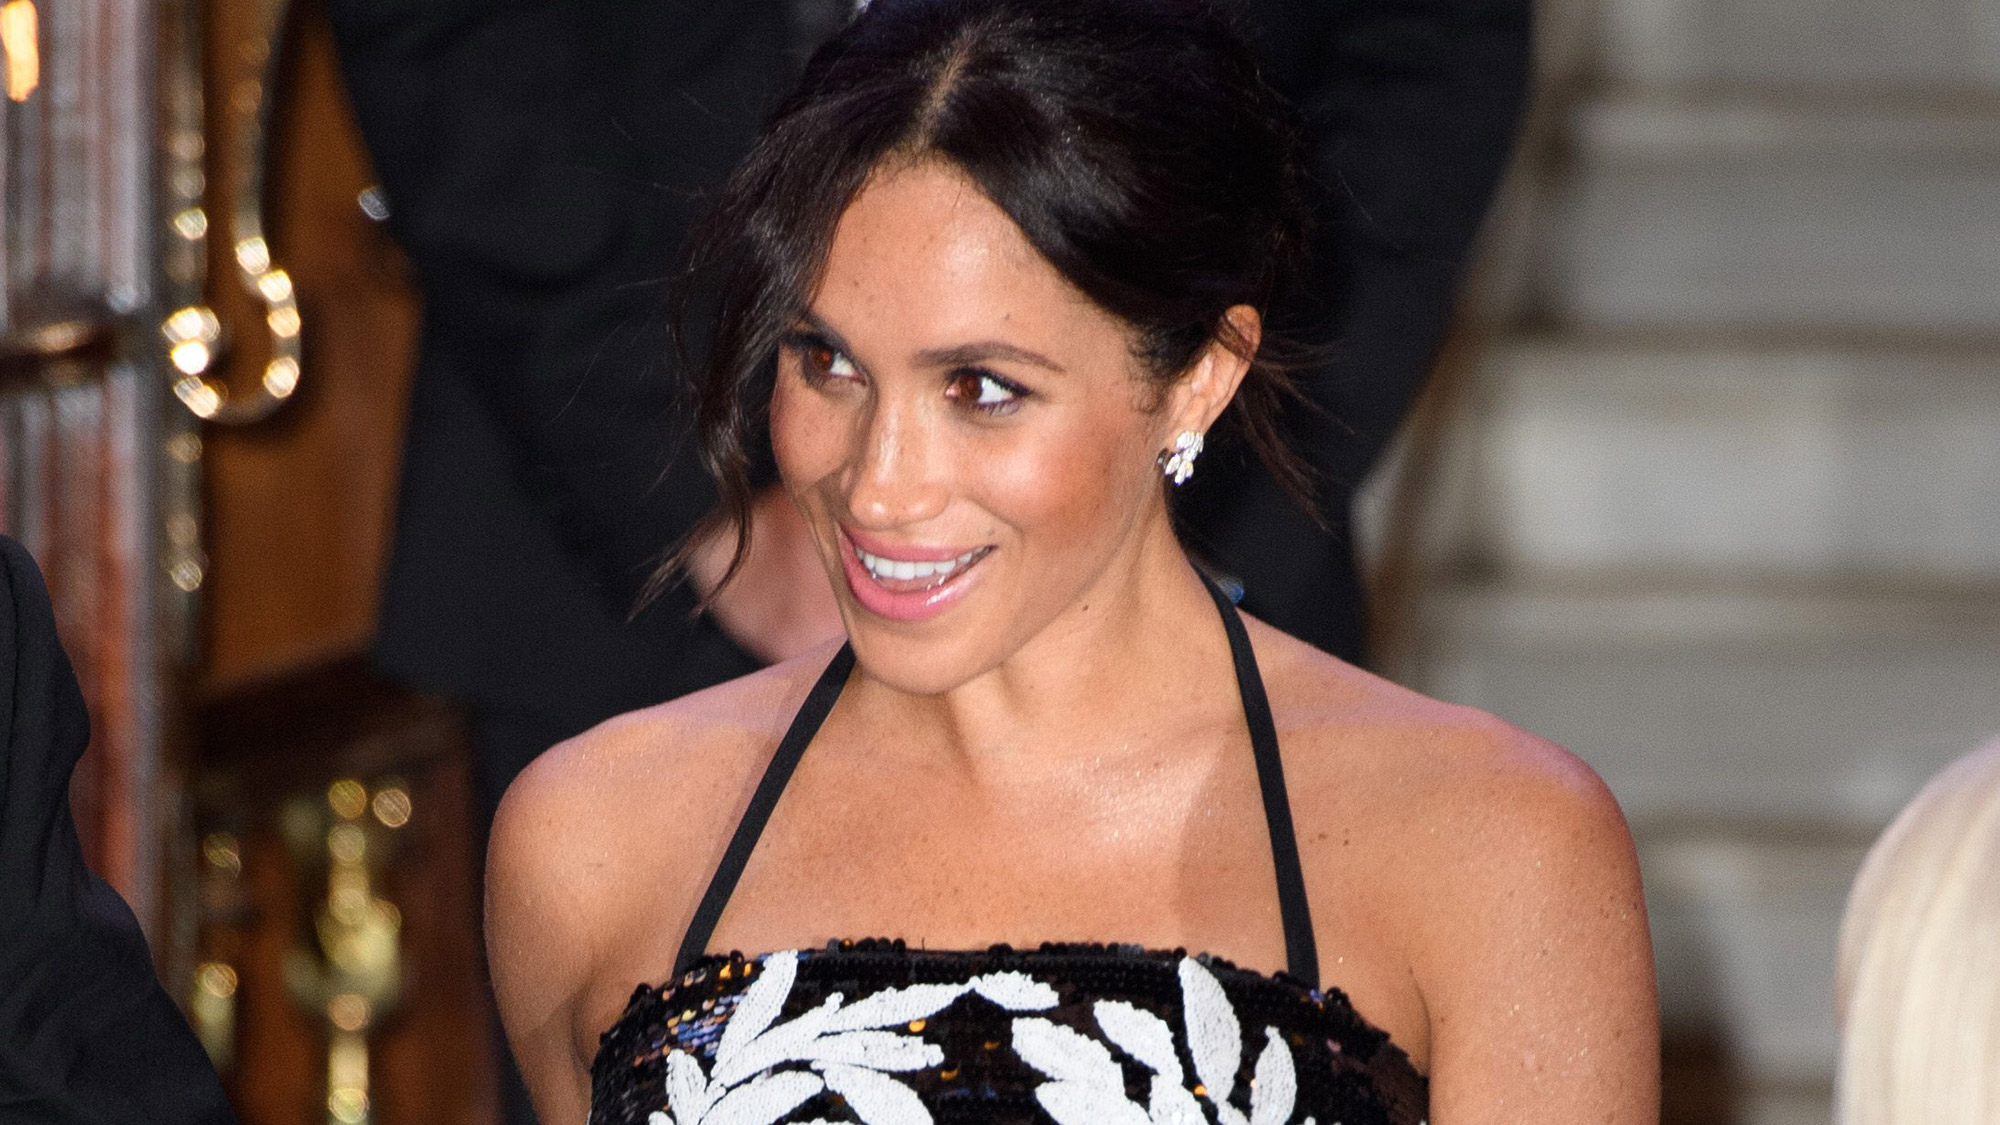 7 Meghan Markle style tips you probably don't know about